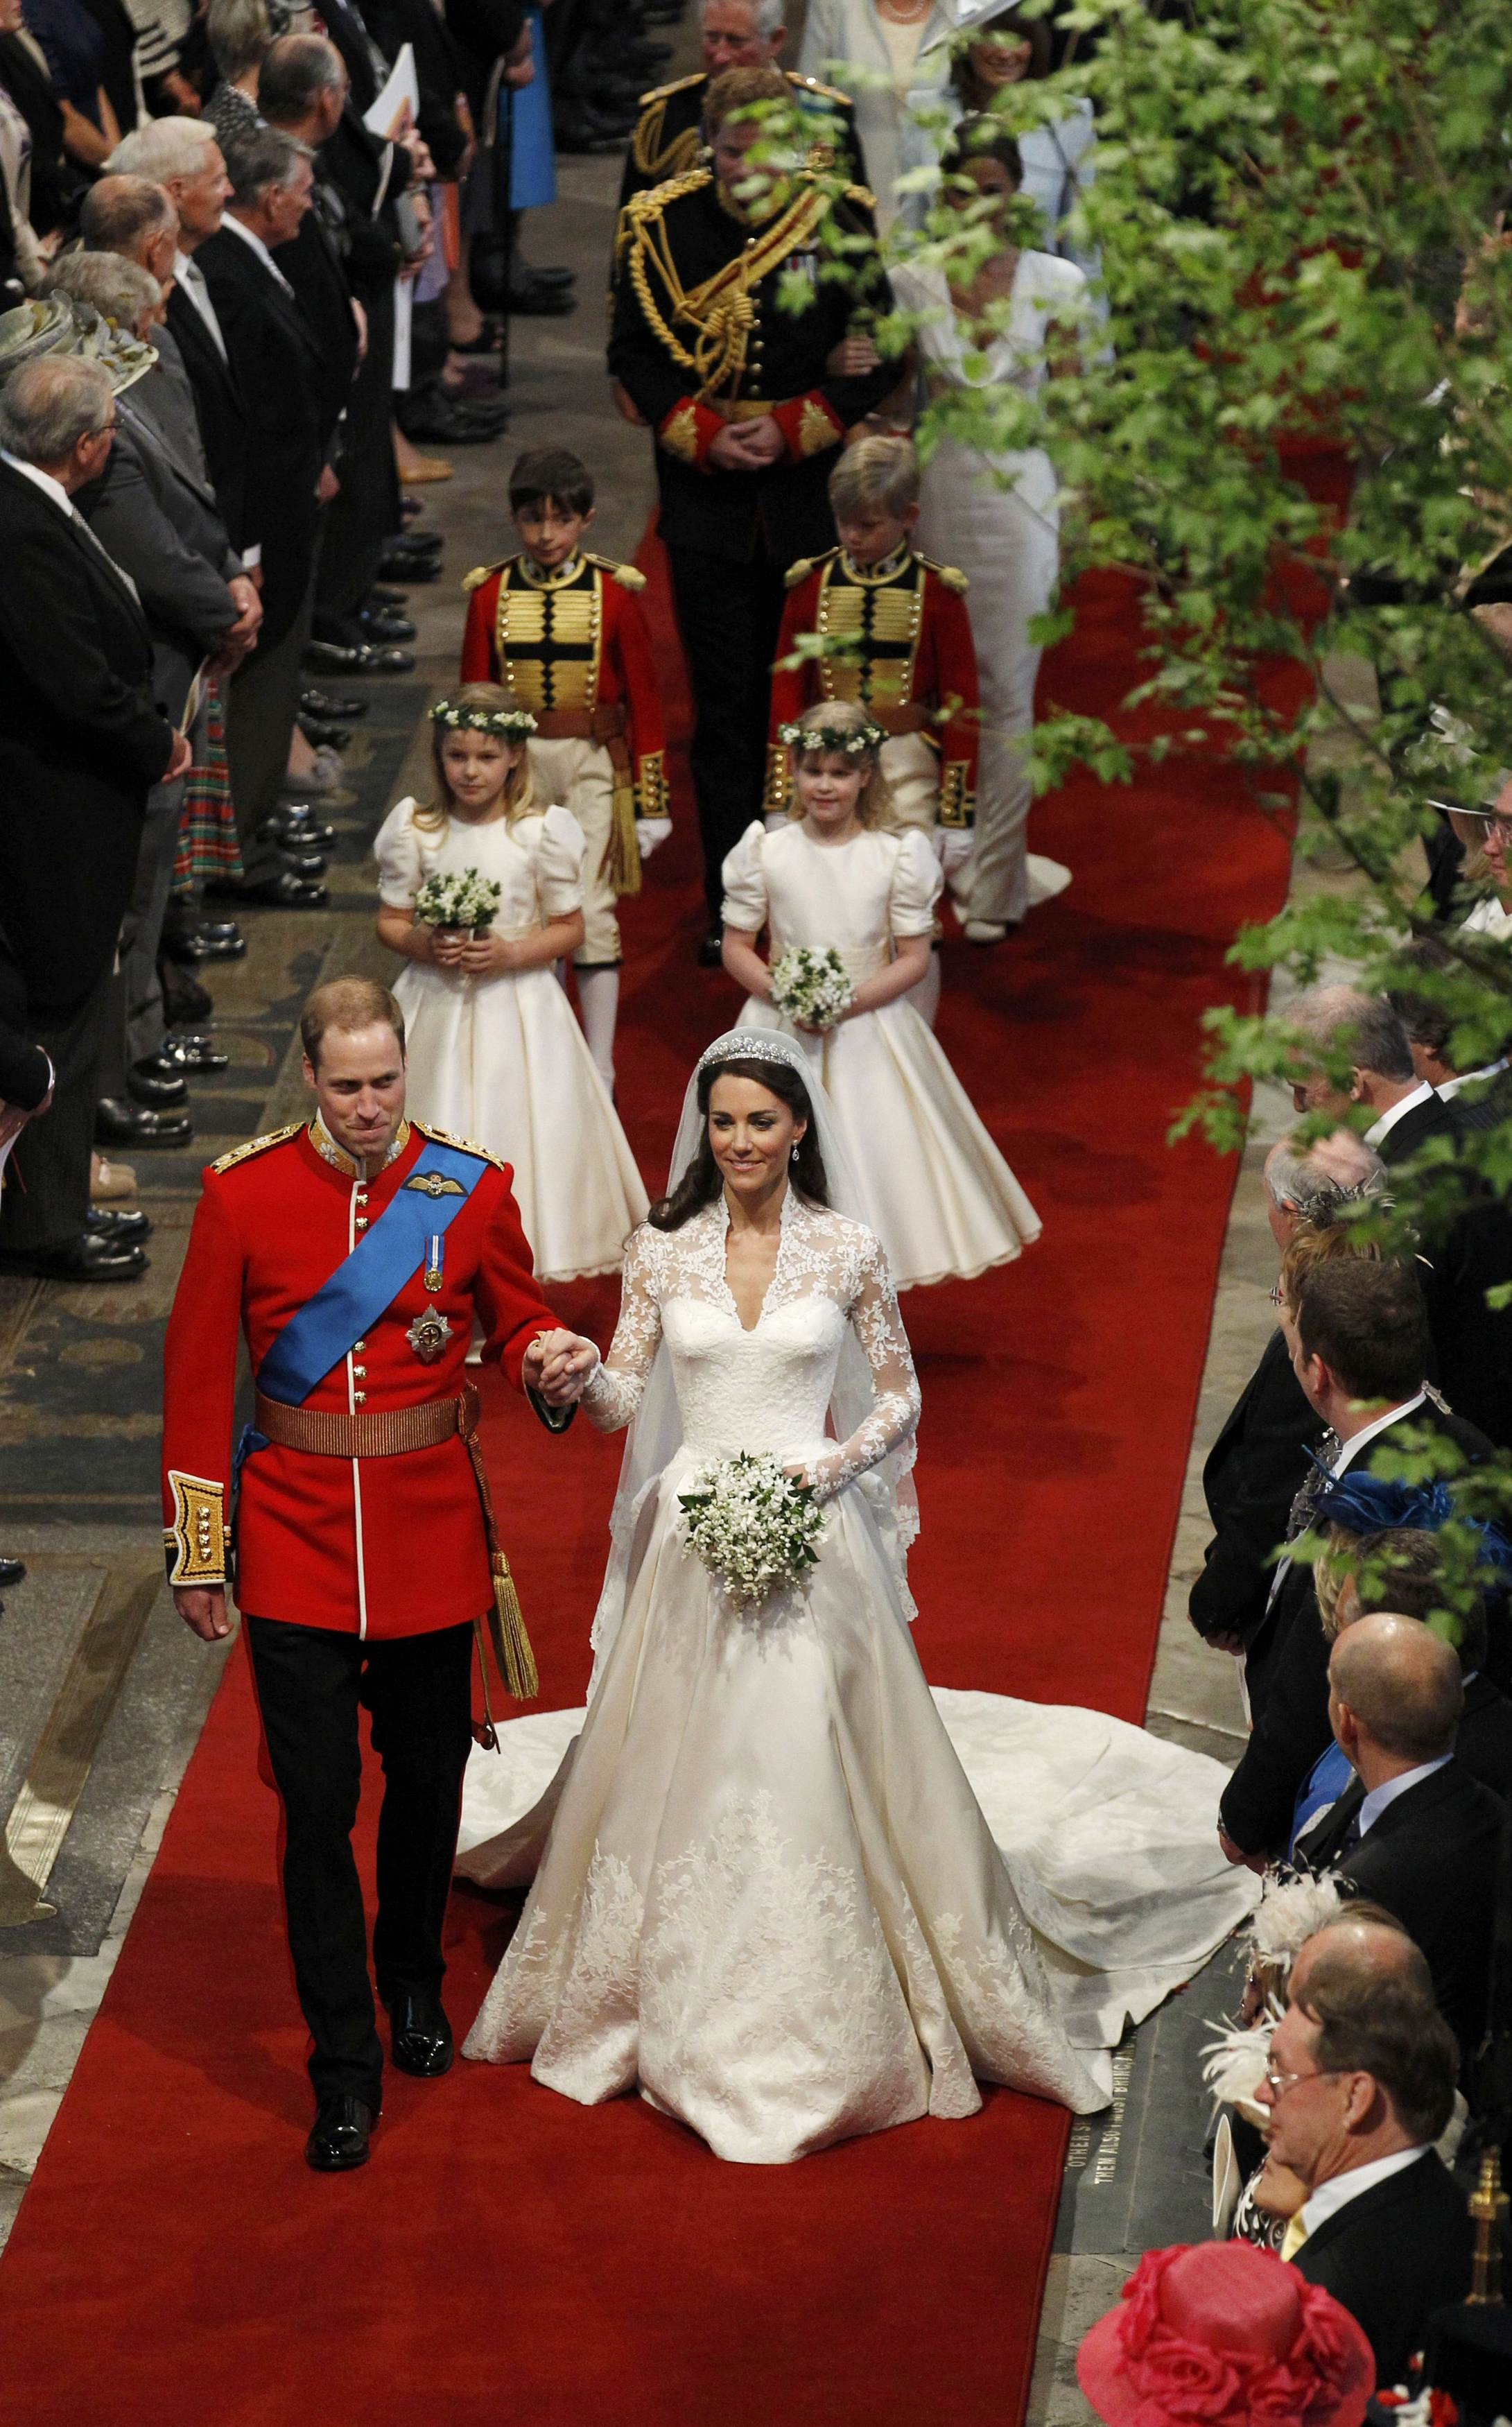 LONDON - APRIL 29: Prince William, Duke of Cambridge and Princess Catherine, Duchess of Cambridge leave the Westminster Abbey after their wedding ceremony on April 29, 2011 in London,England. (Photo by Suzanne Plunkett - WPA Pool/Getty Images)